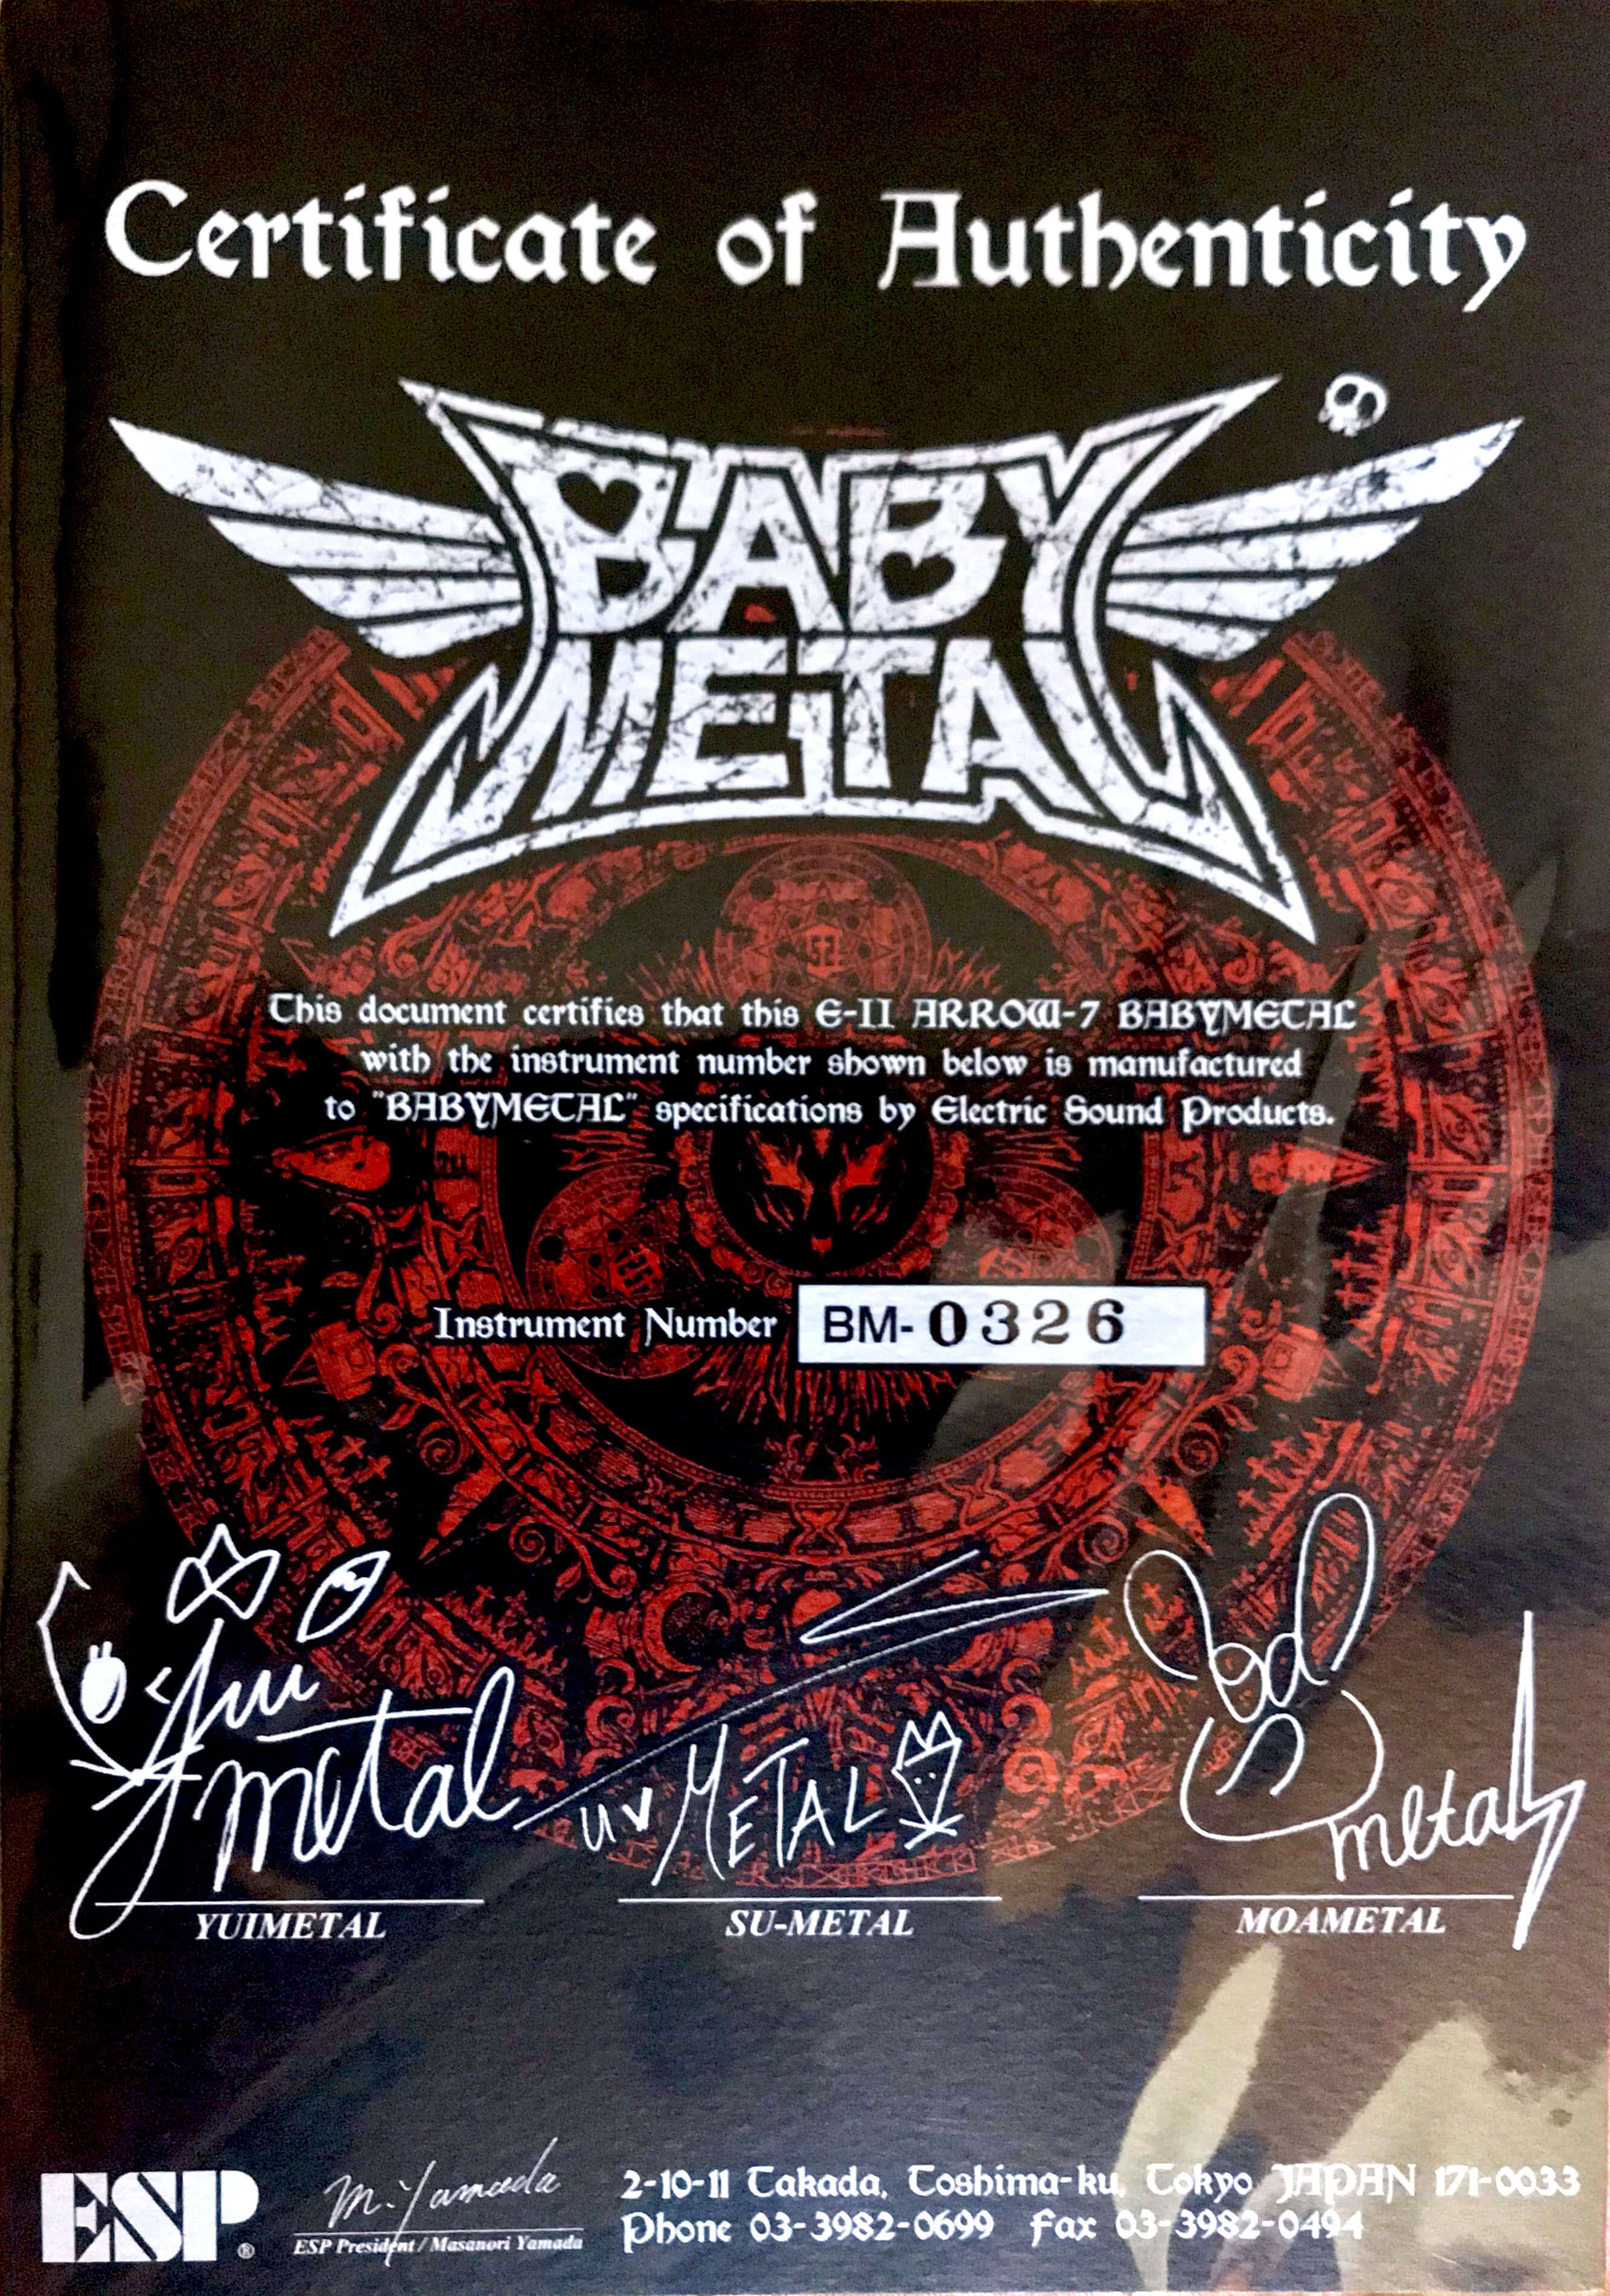 E-II ARROW-7 BABYMETAL